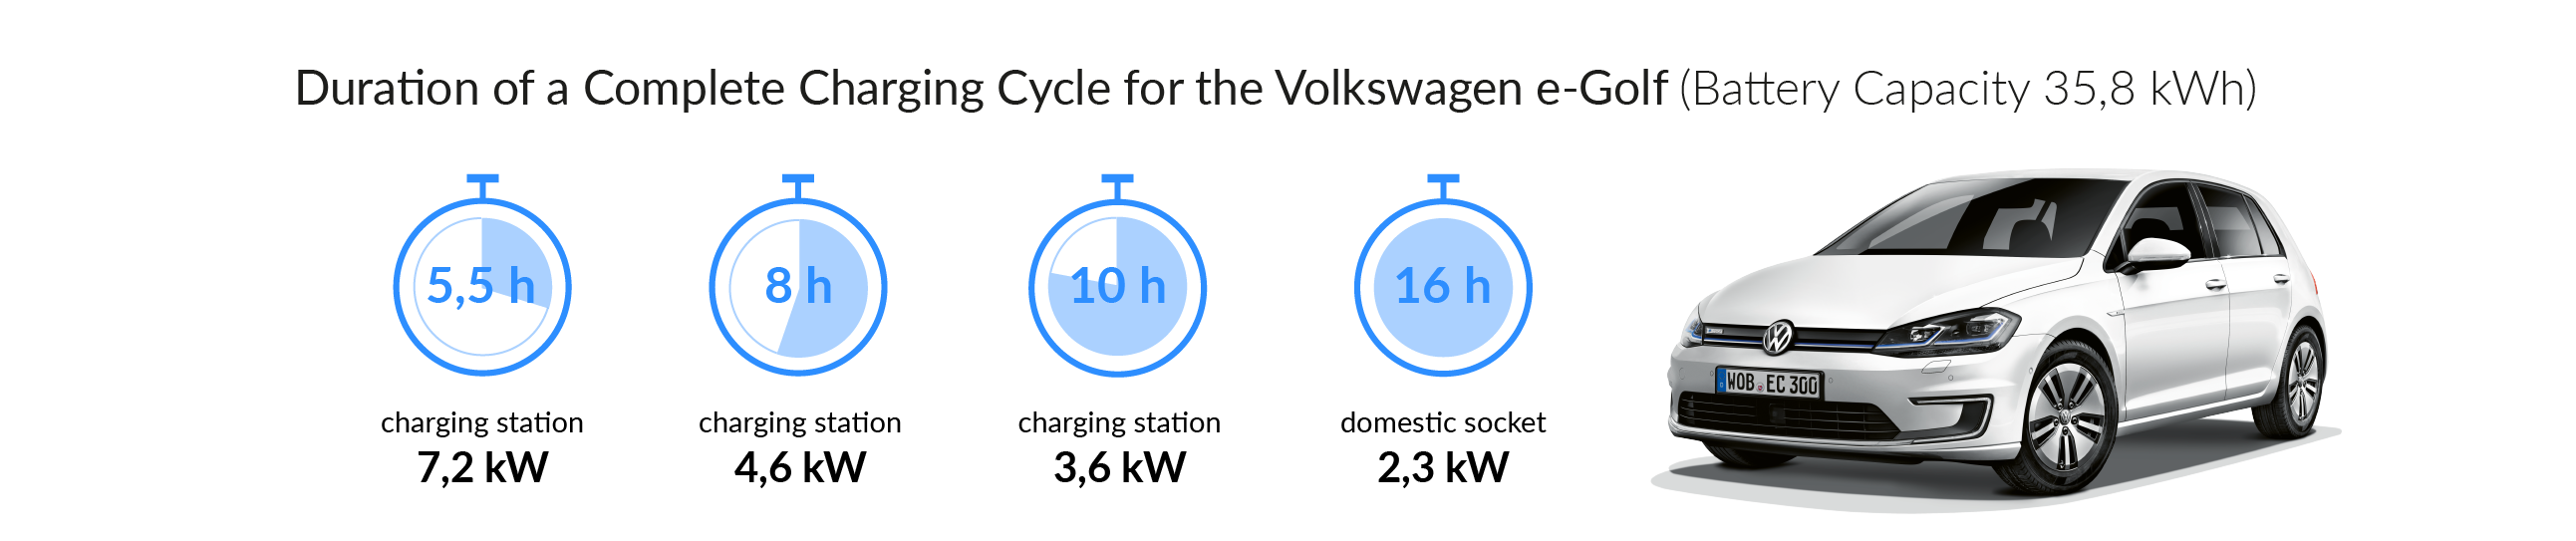 Charging time for your Volkswagen e-Golf